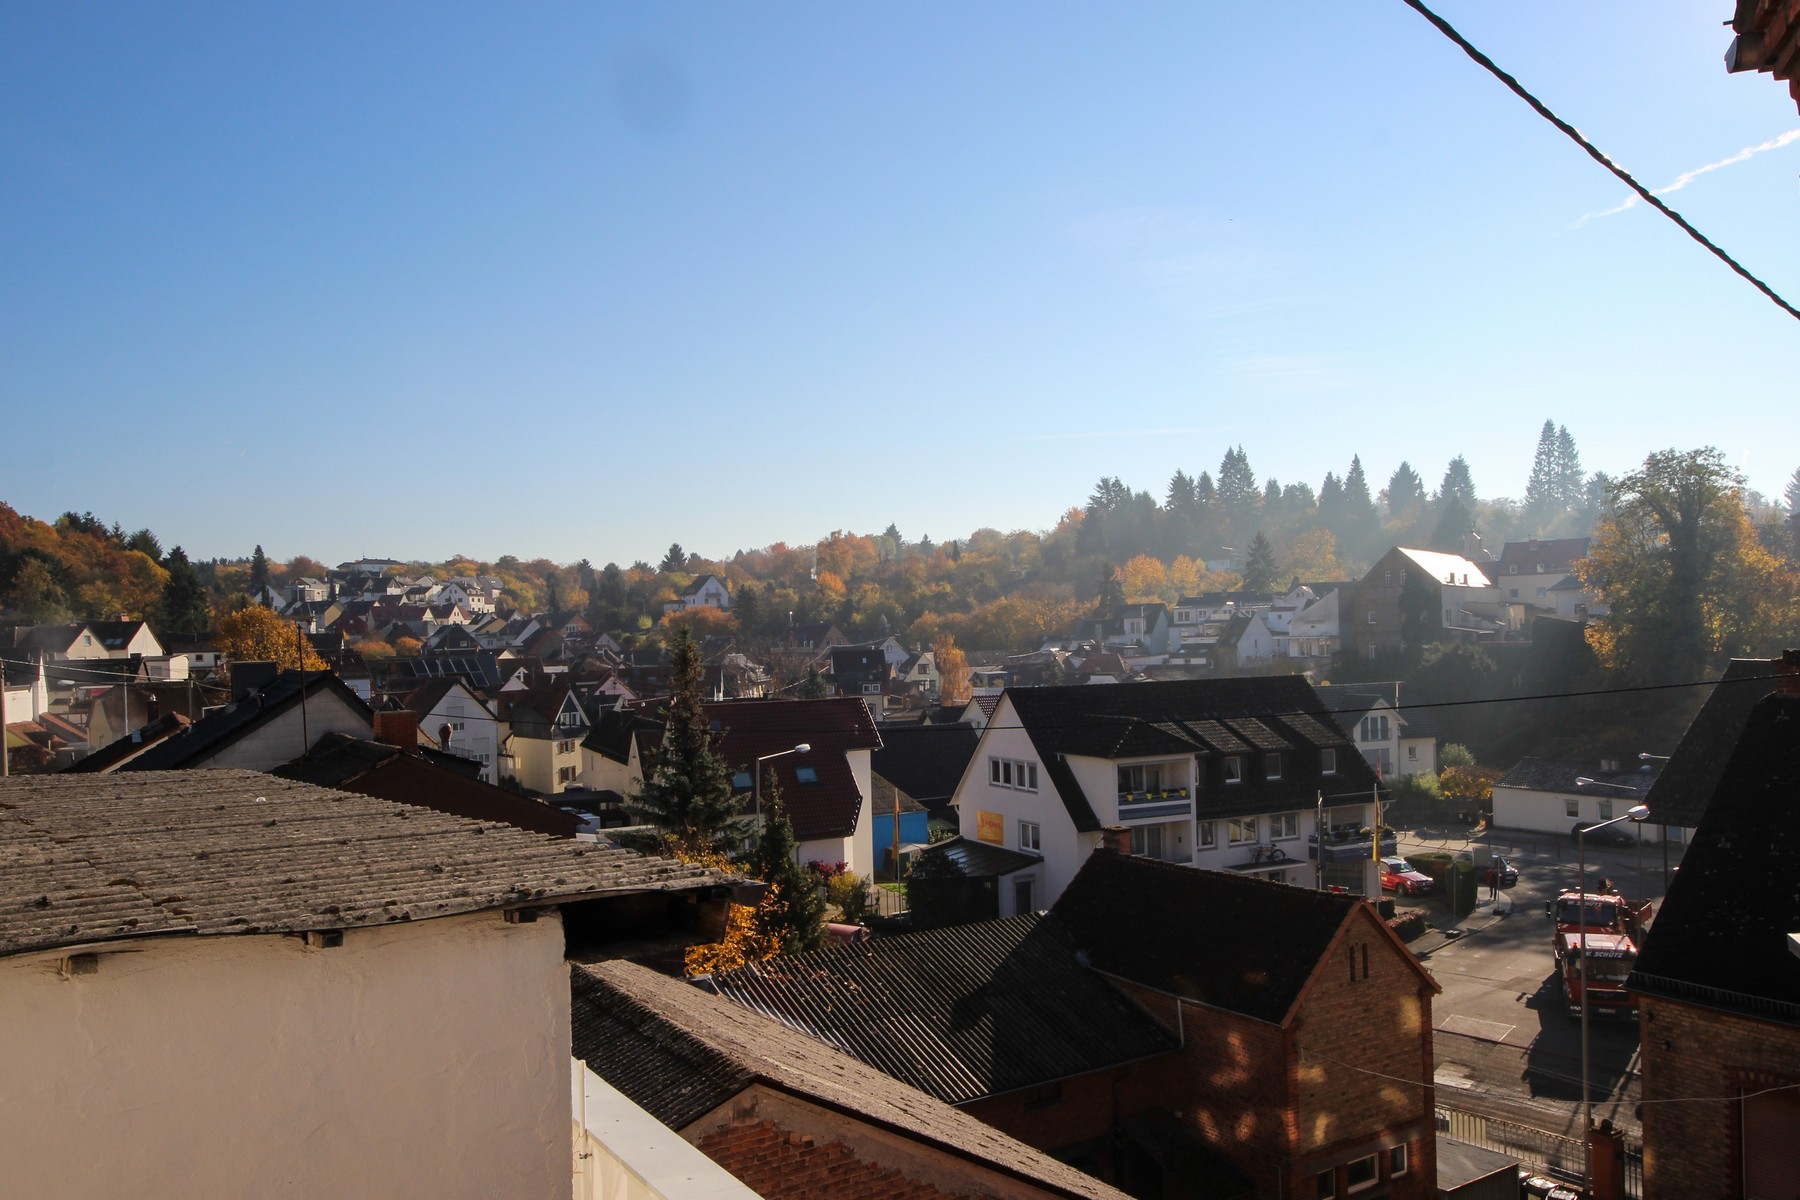 Single Family Home for Sale at Wiesbaden-Rambach: House and Vacant Land Wiesbaden, Hessen, 65207 Germany